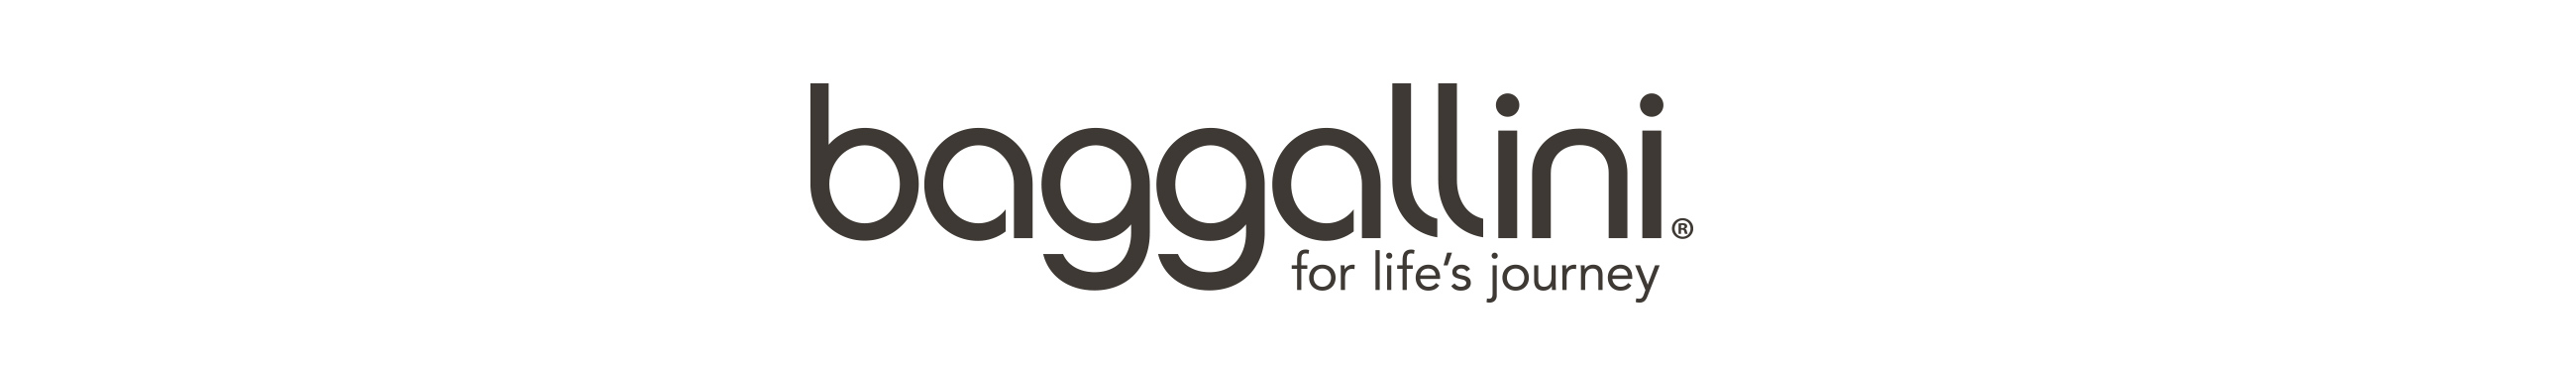 baggallini for life's journey